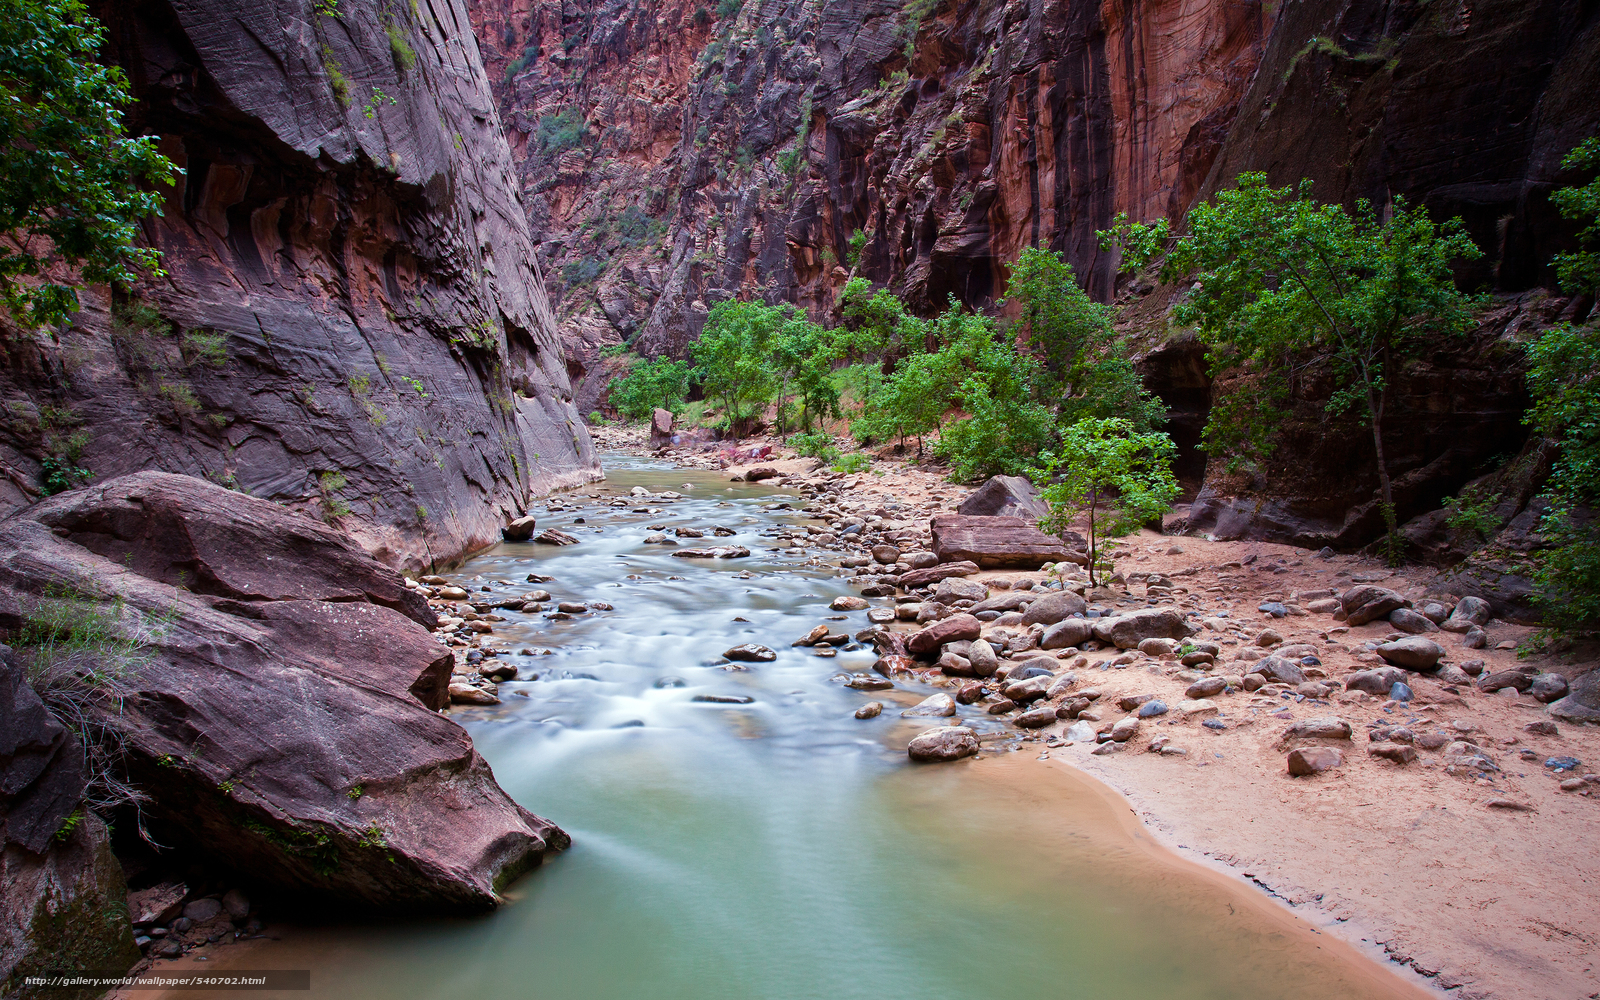 wallpaper Zion National Park Rocks river nature desktop 1600x1000